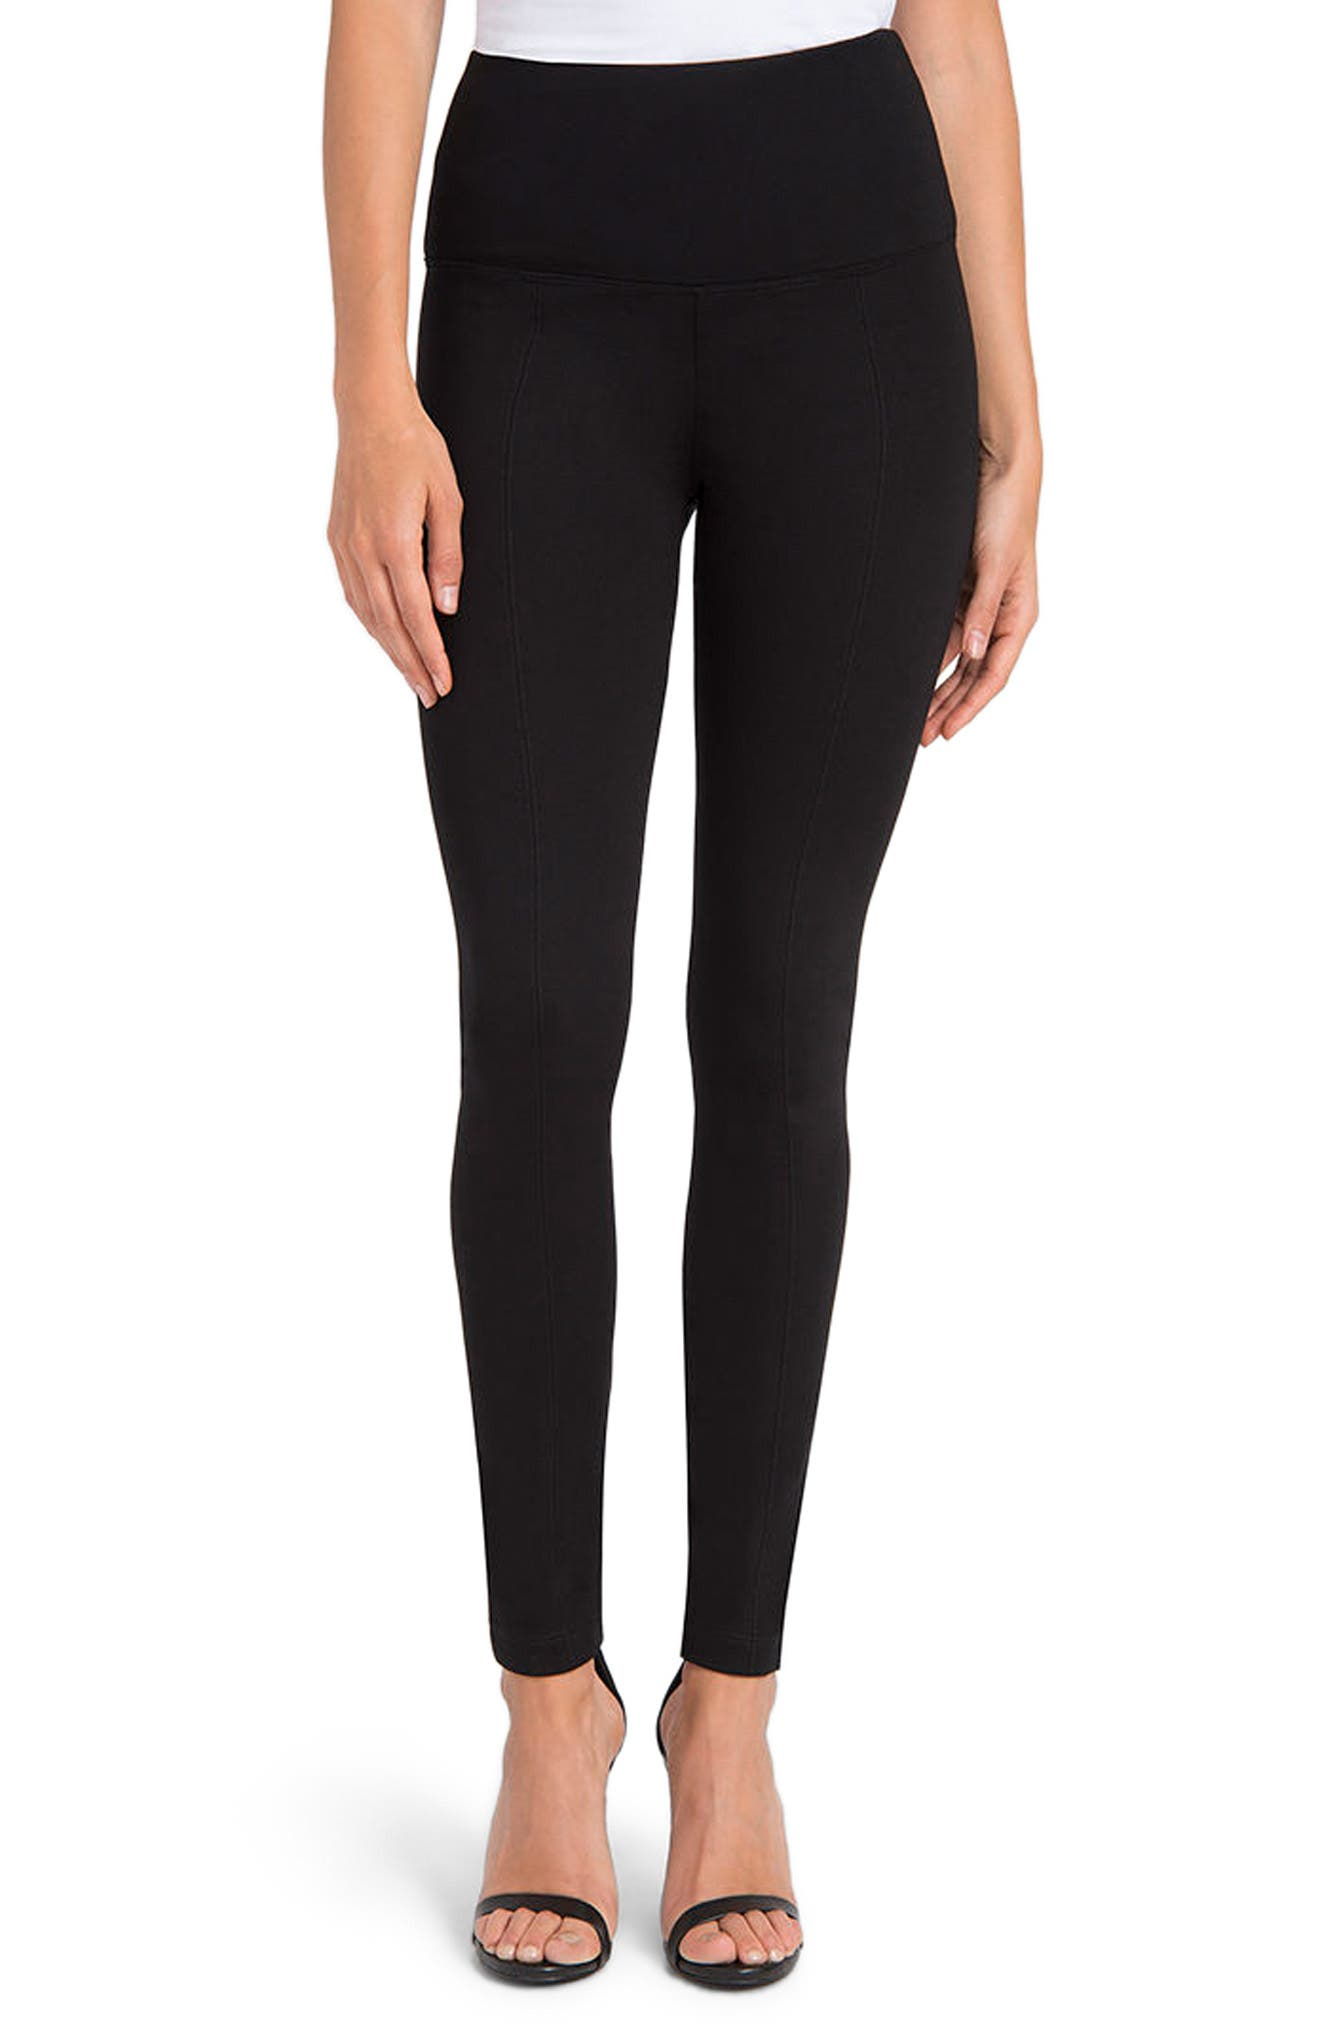 Alternate Image 1 Selected - Lyssé Center Seam Ponte Leggings